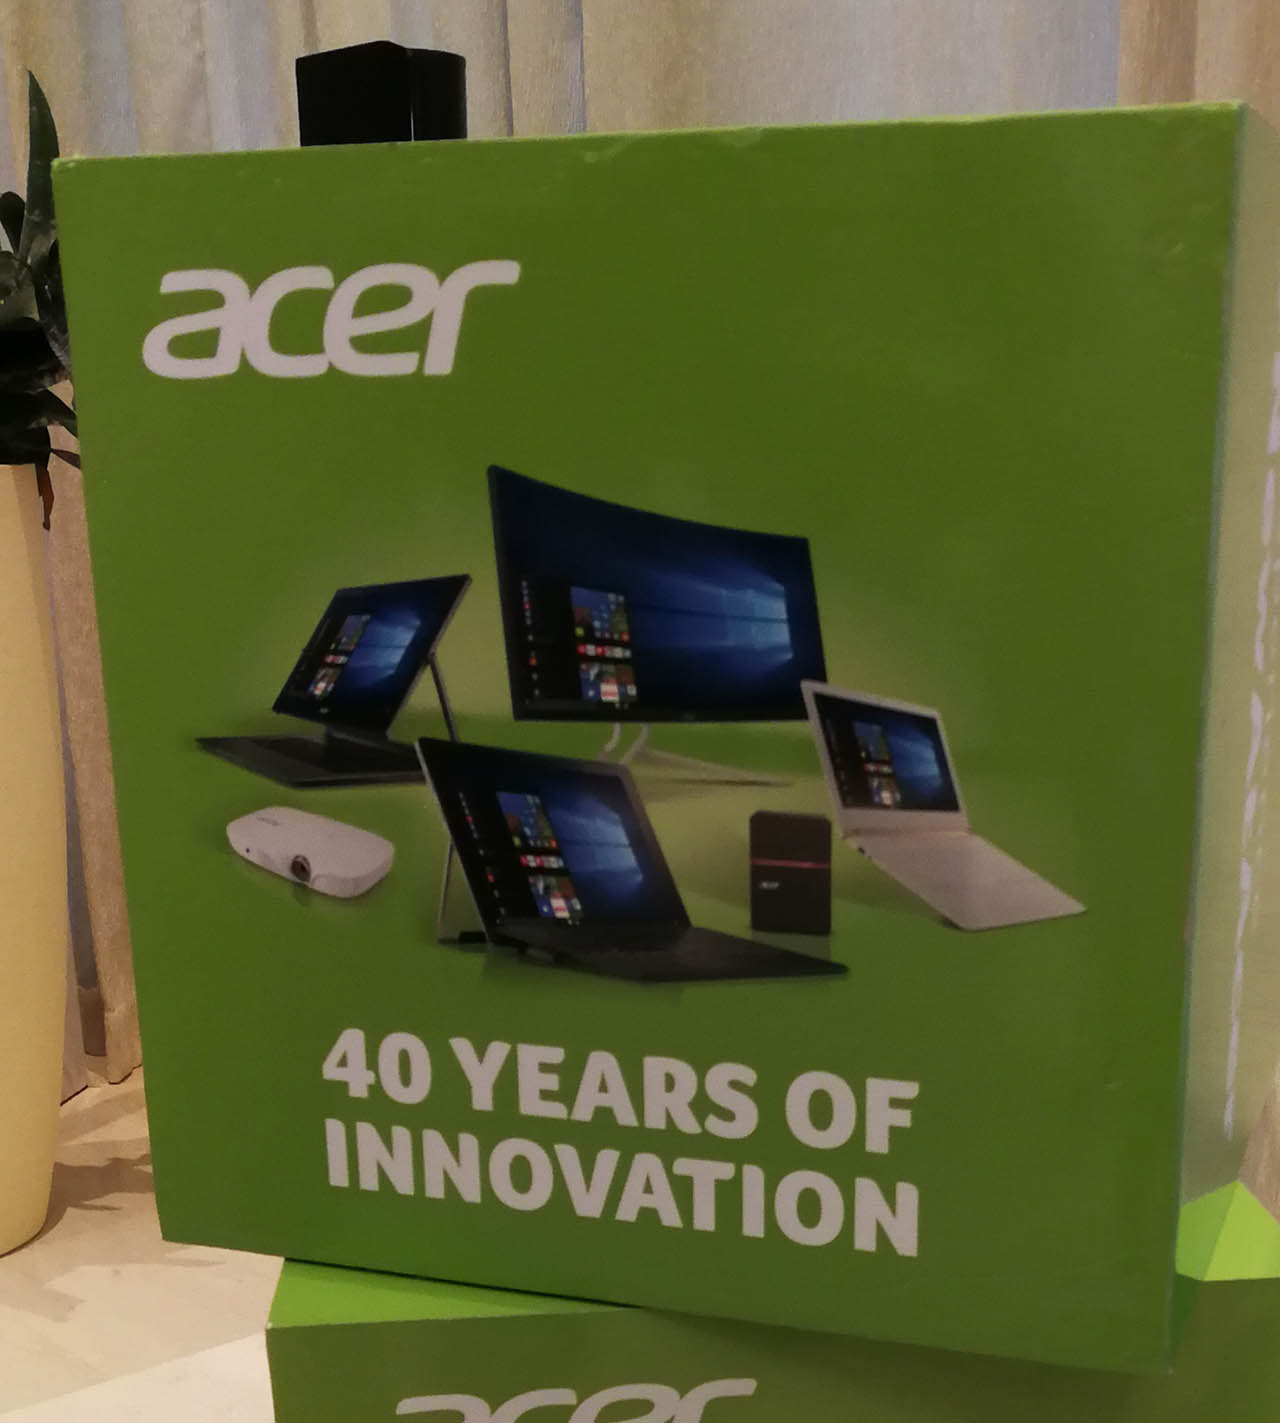 Acer Middle East showcases the Predator Triton 700 and other stylish products to enhance lifestyle